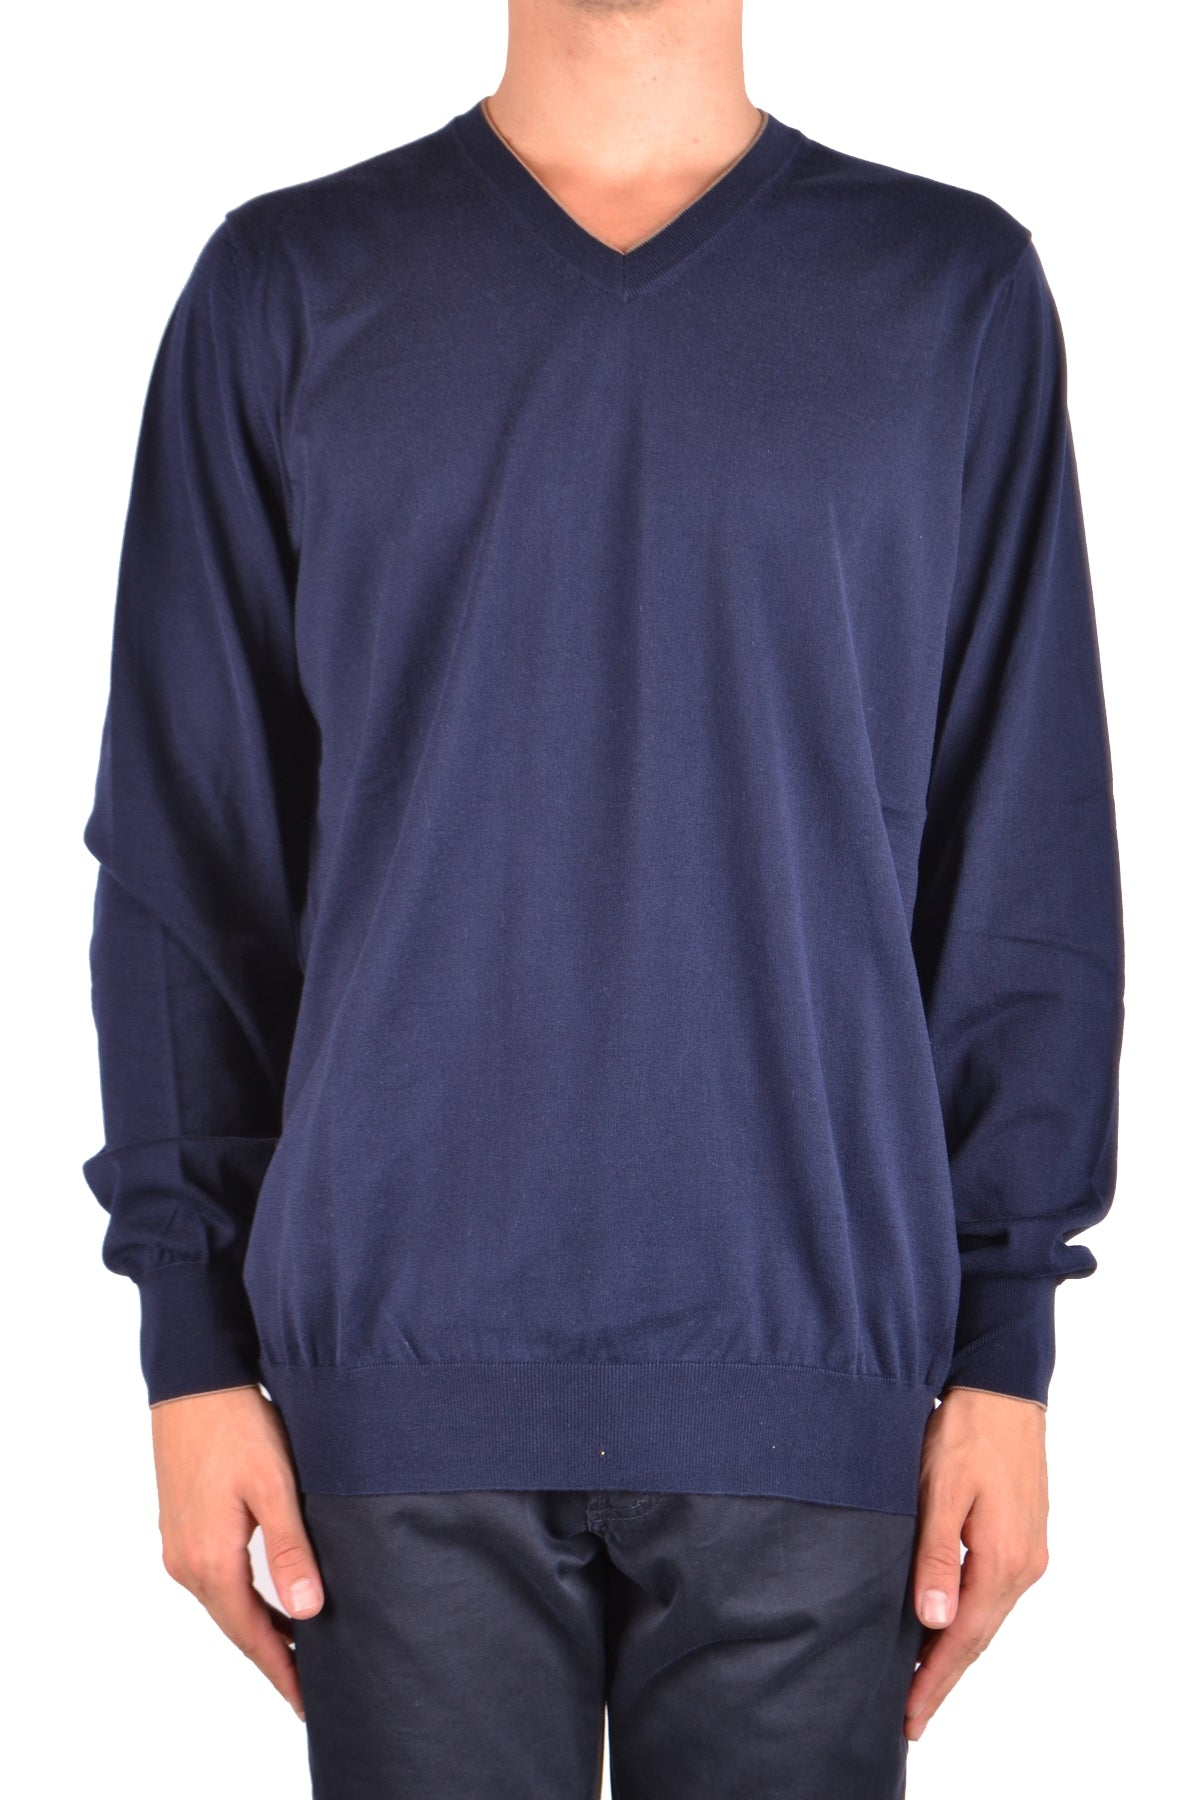 Sweater Brunello Cucinelli-Sweater - MAN-54-Product Details Terms: New With LabelYear: 2018Main Color: BlueGender: ManMade In: ItalyManufacturer Part Number: M2900162Size: ItSeason: Spring / SummerClothing Type: Sweater Composition: Cotton 100%-Keyomi-Sook